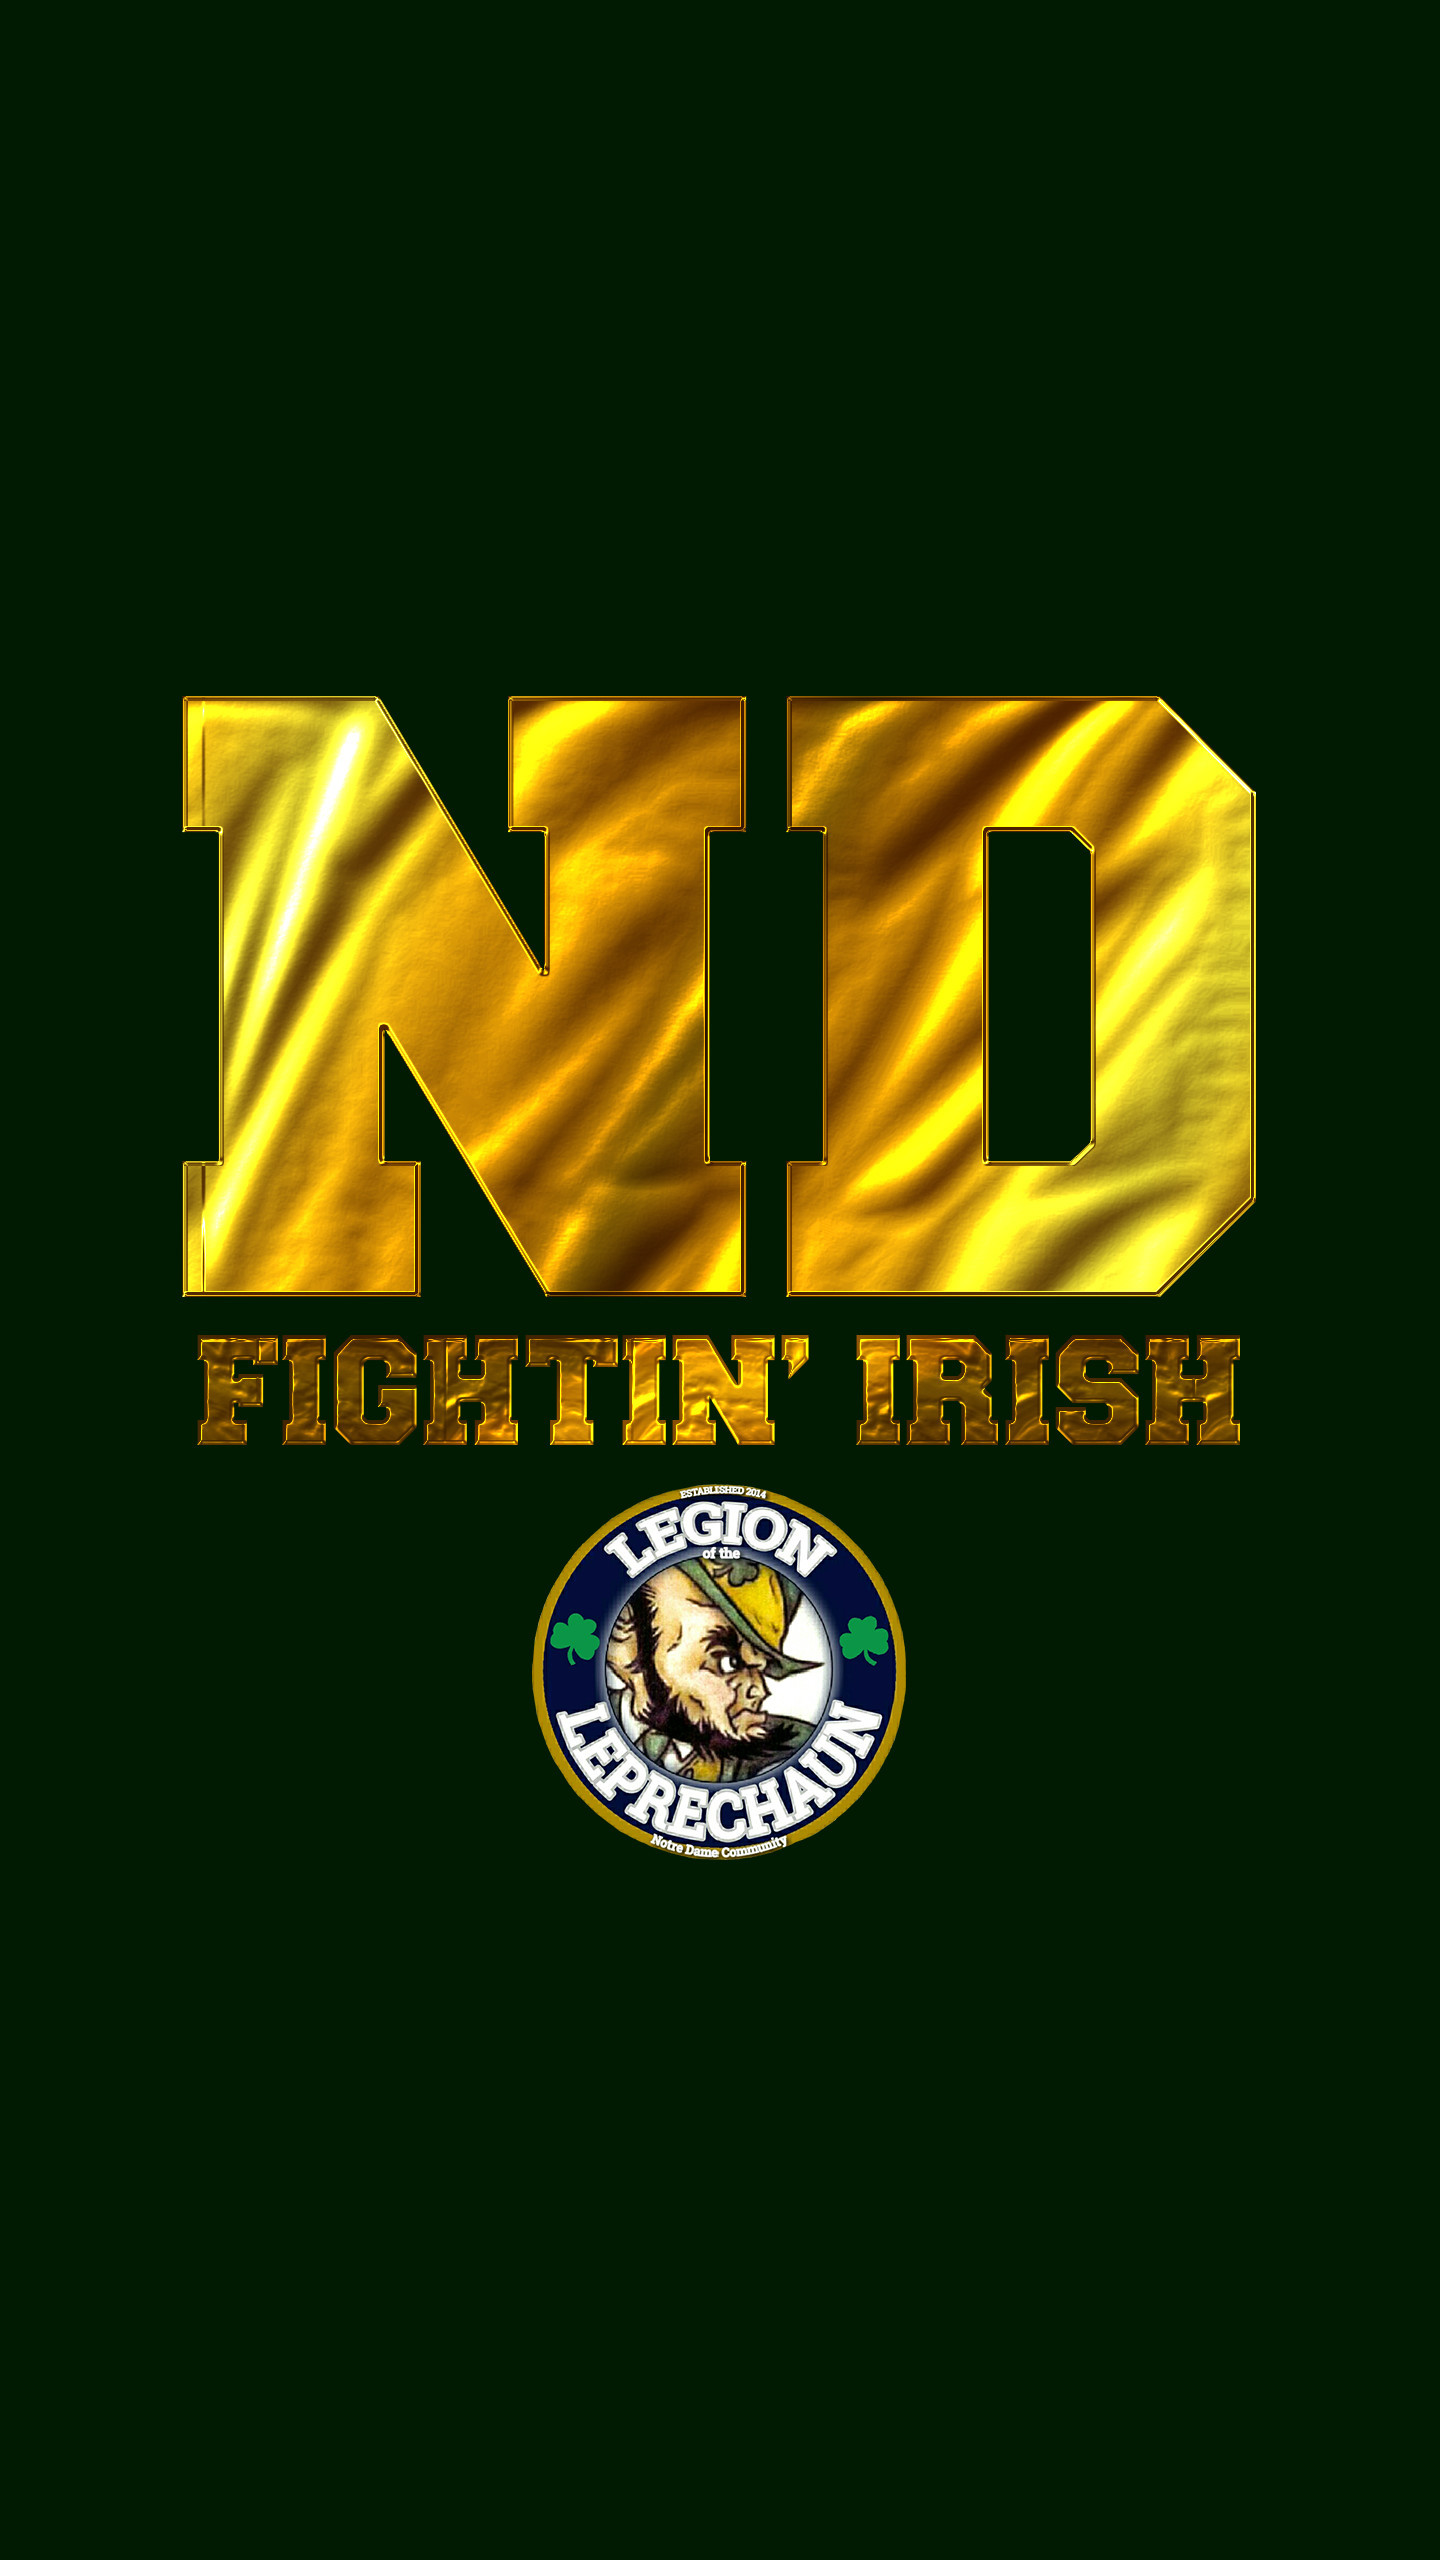 1440x2560 1920x1080 Wallpapers // Proud to Be ND // University of Notre Dame